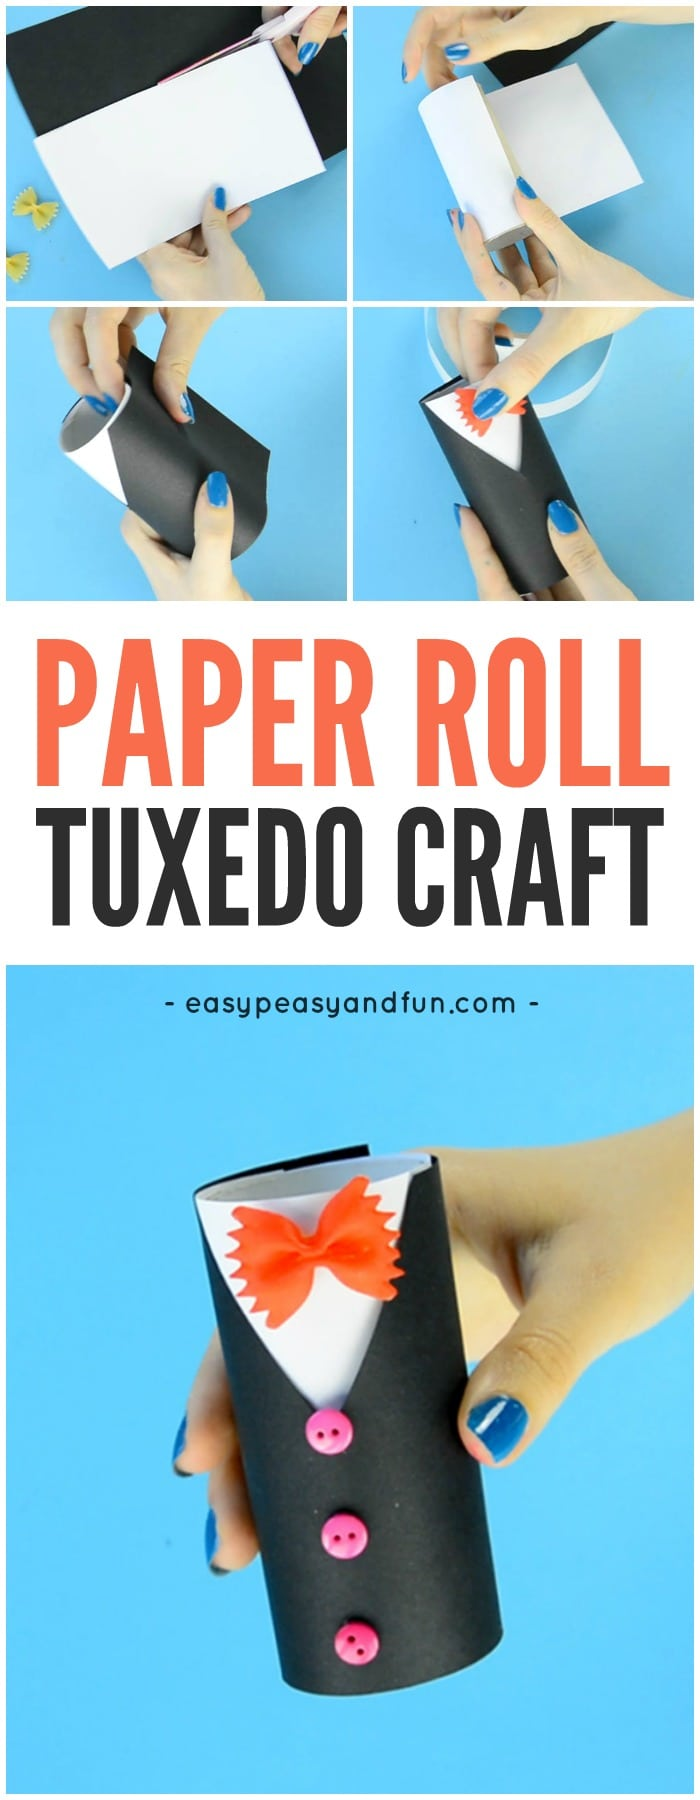 Cute Paper Roll Tuxedo Craft for Kids to Make. Great Father's day Craft for Kids too!